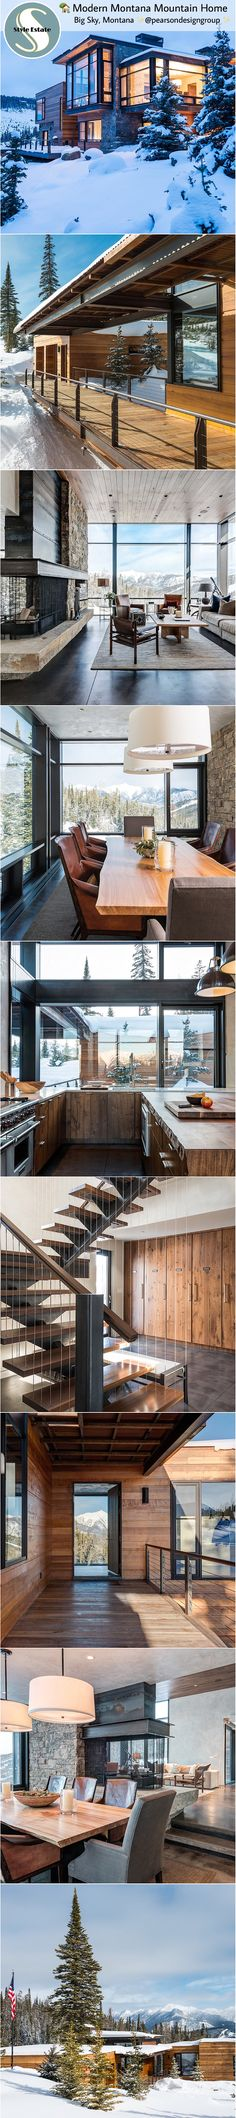 Modern Mountain Home – Big Sky, Montana ✨@pearsondesigngroup ✨